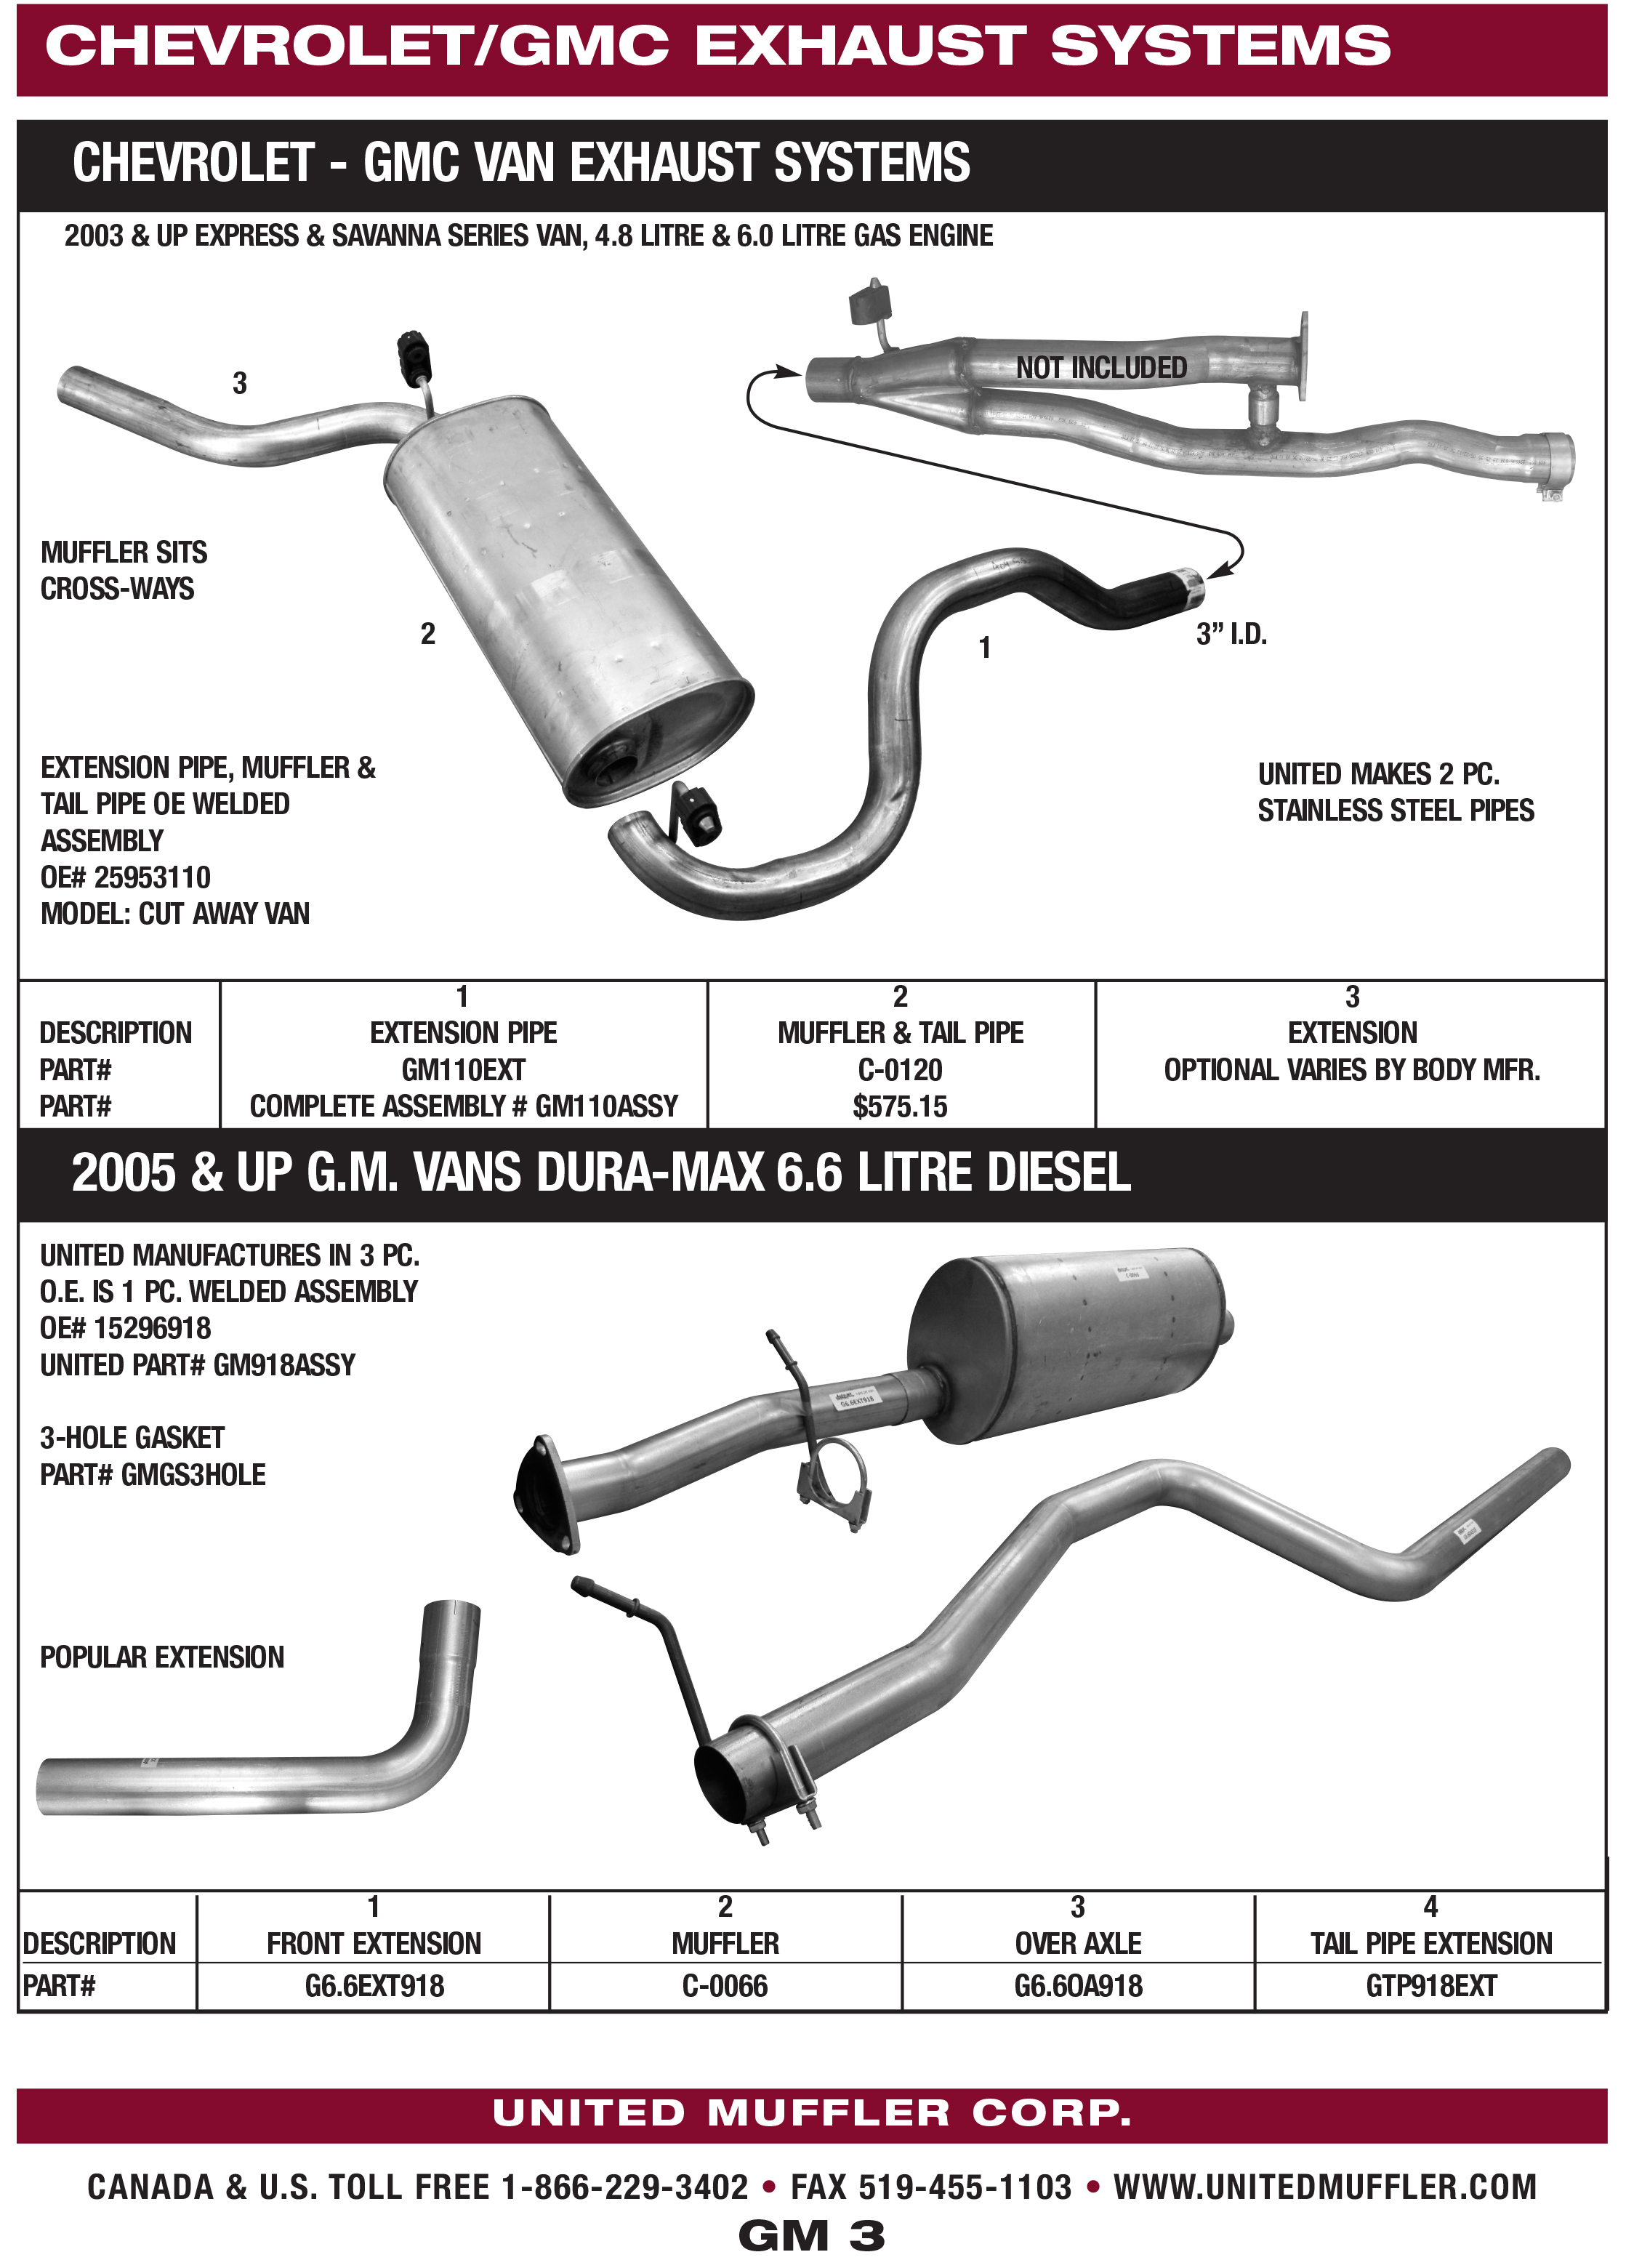 chev gmc united muffler corporation rh unitedmuffler com Chevy 305 Engine Exploded View GM 3 8 Series 2 Engine